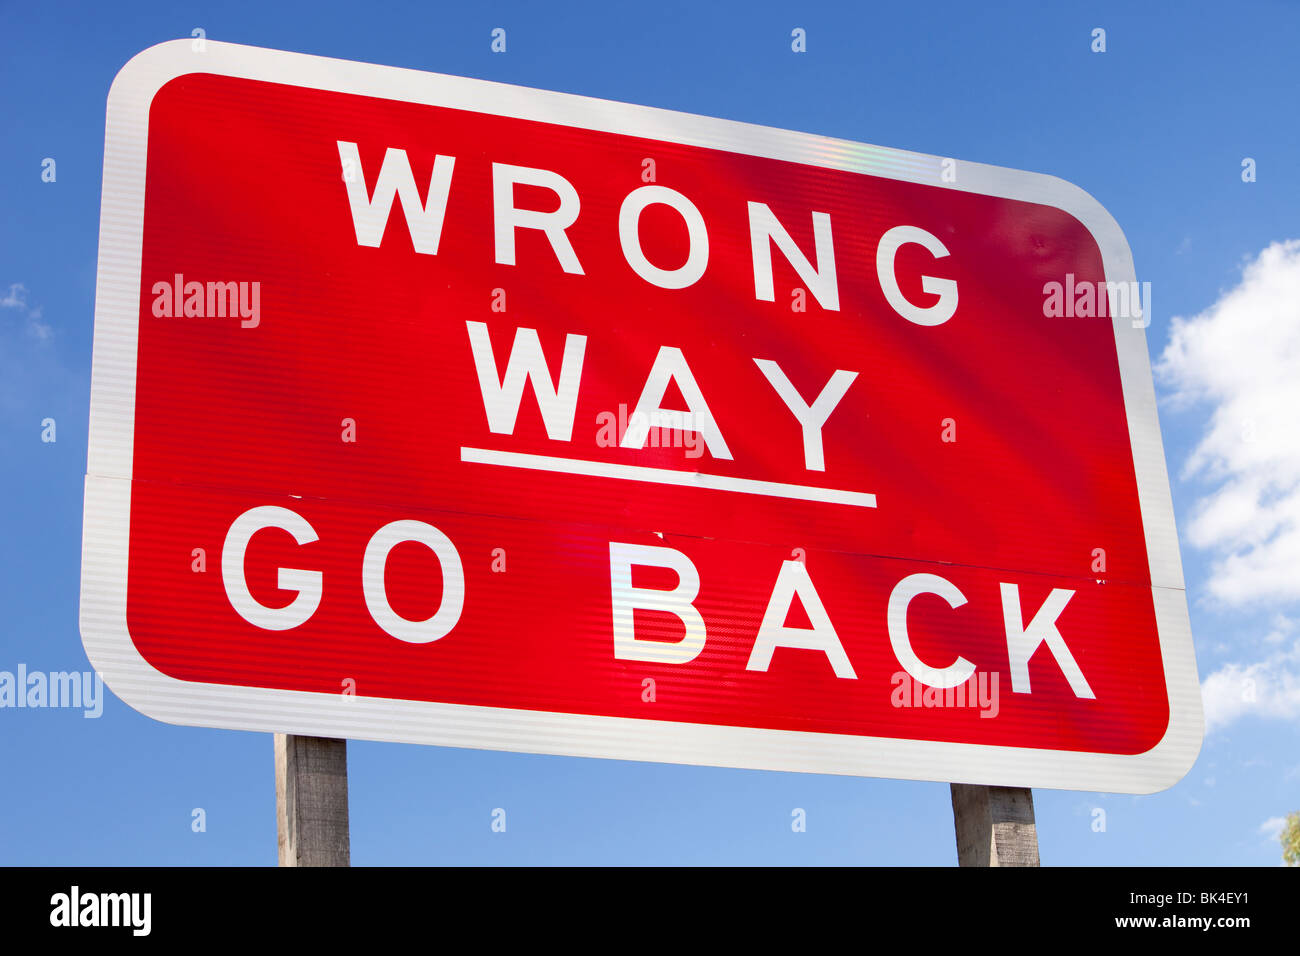 A road sign on a freeway in Victoria, Australia. - Stock Image